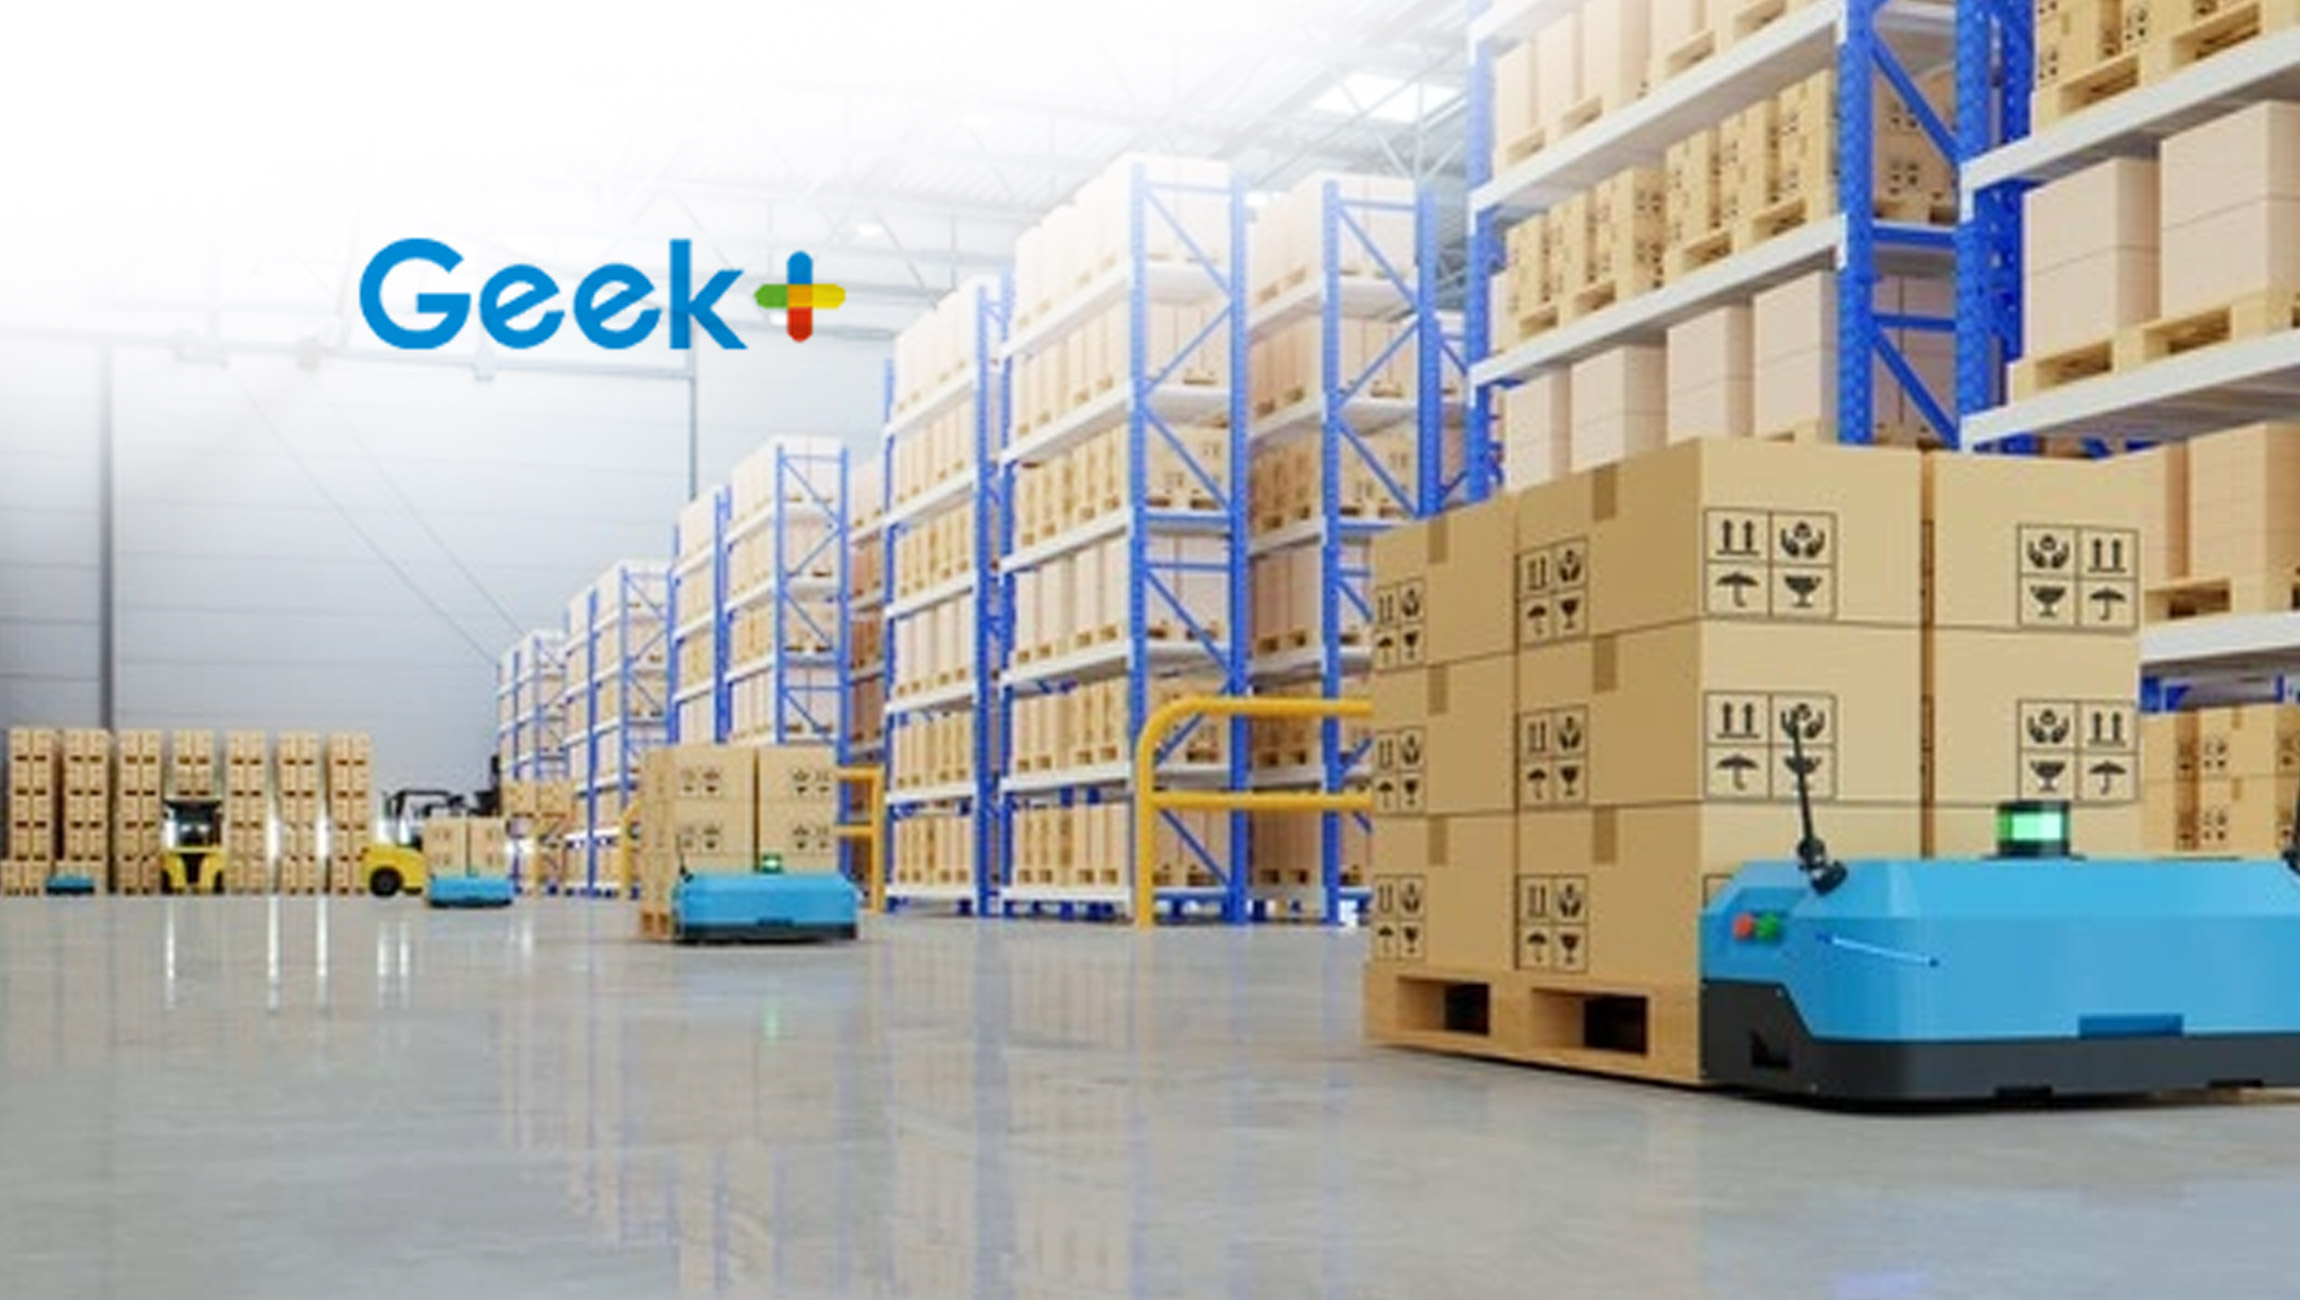 Geek_-launches-highest-logistic-robot-in-the-industry-to-revolutionize-warehouse-storage